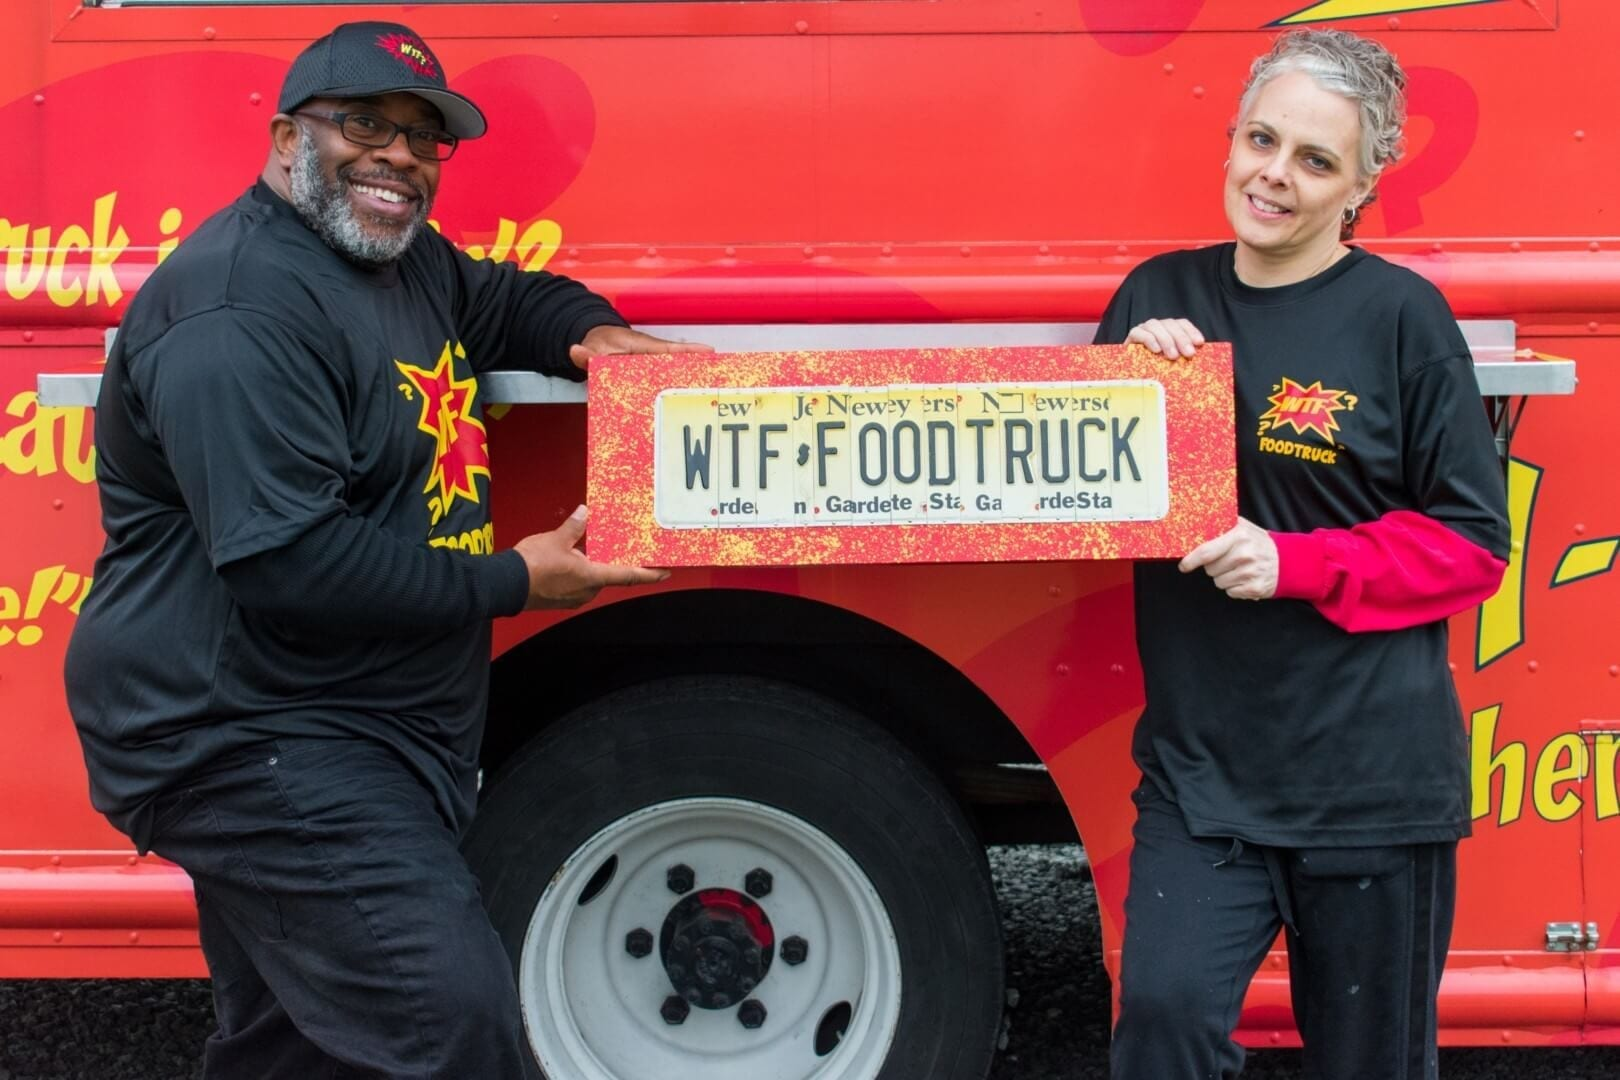 WTF? Food Truck Sign